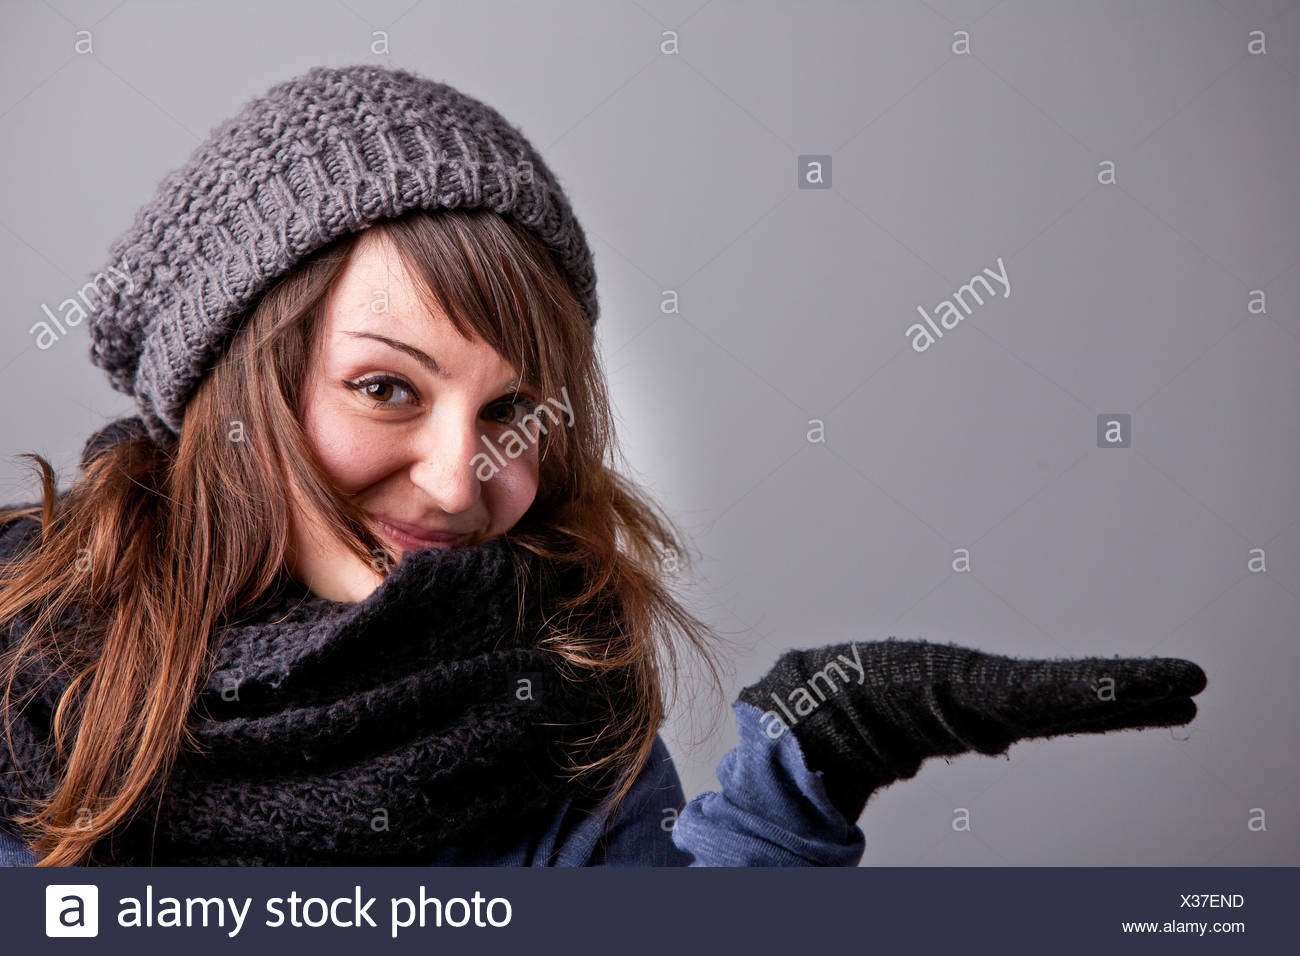 be40ac9c42140 A pretty natural smiling girl in winter clothes raising her hand to show off  your COPY SPACE